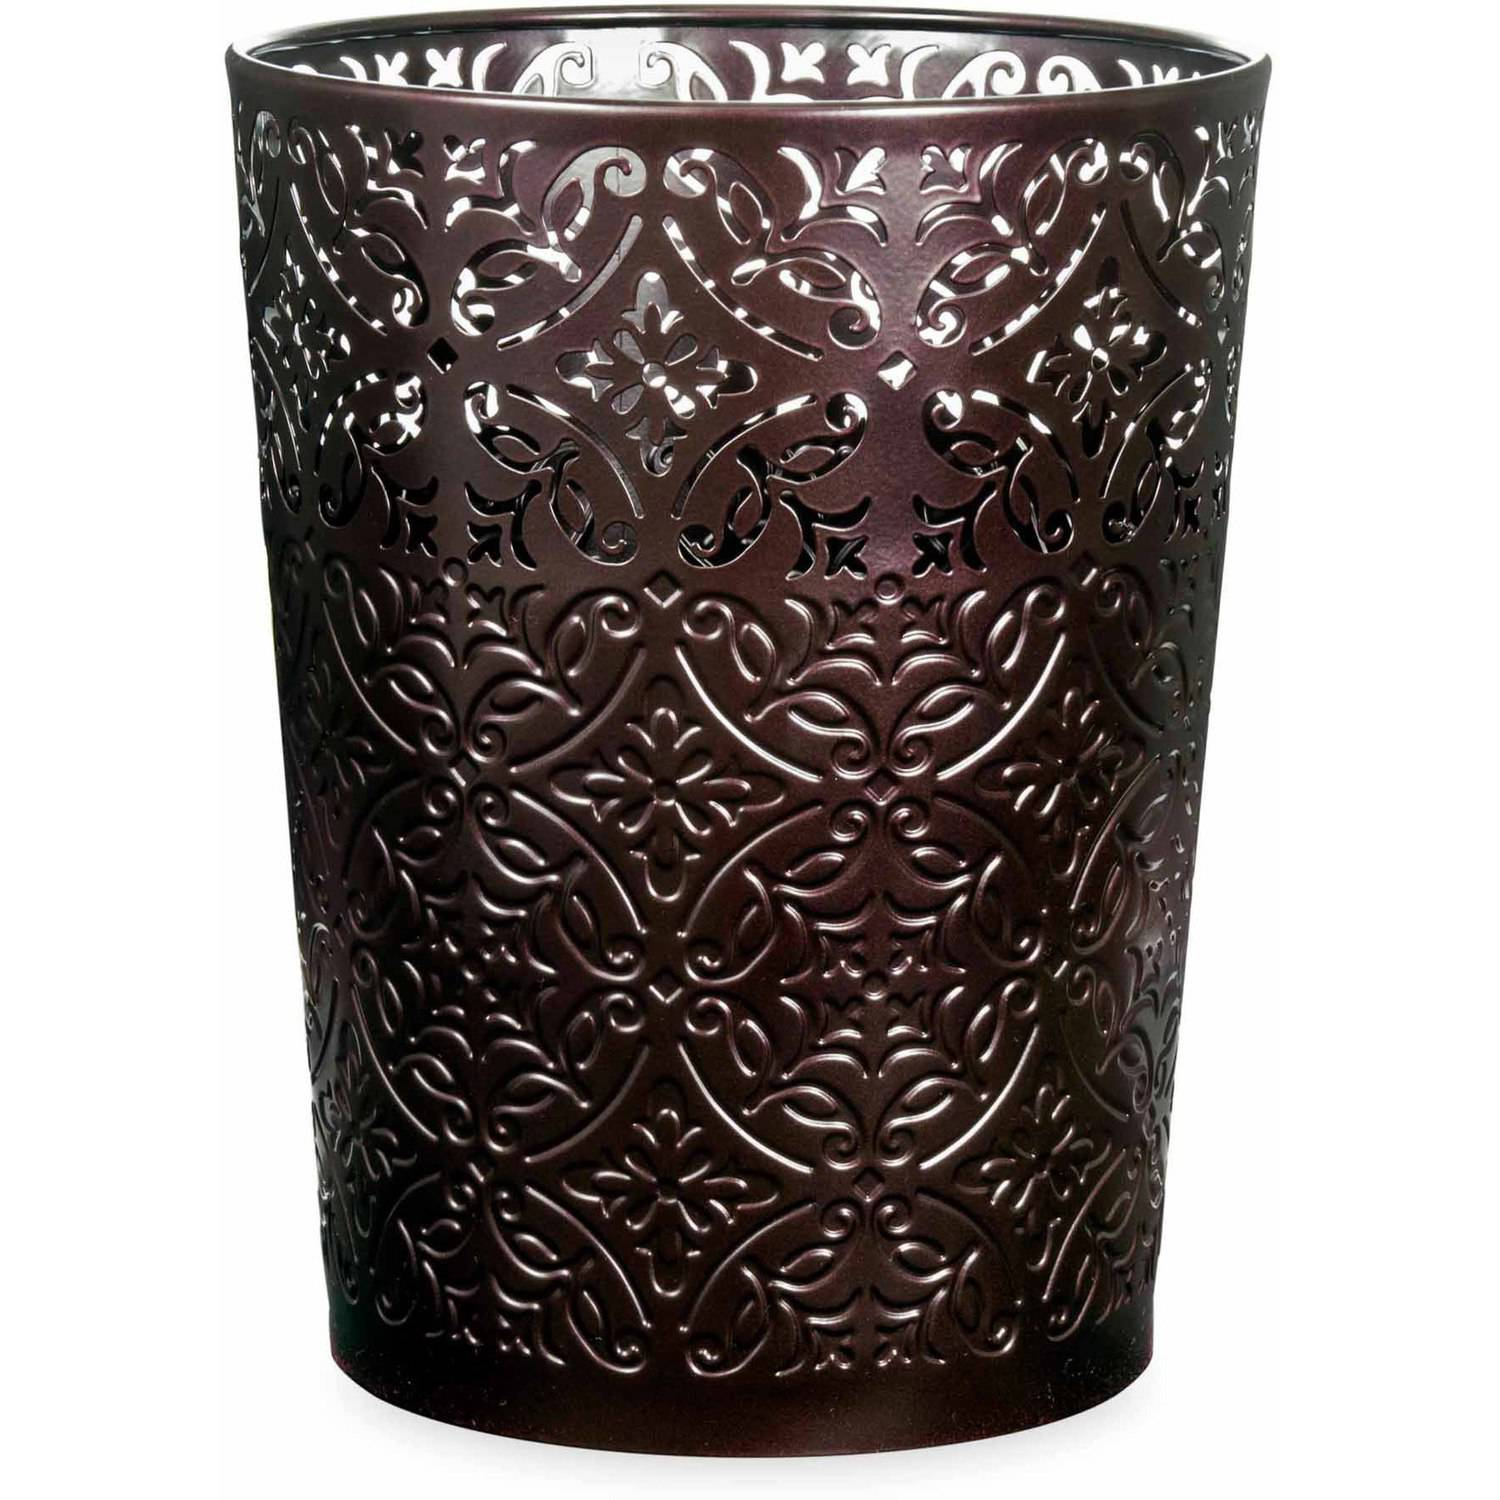 Better Homes and Gardens Galleon Wastebasket, Bronze